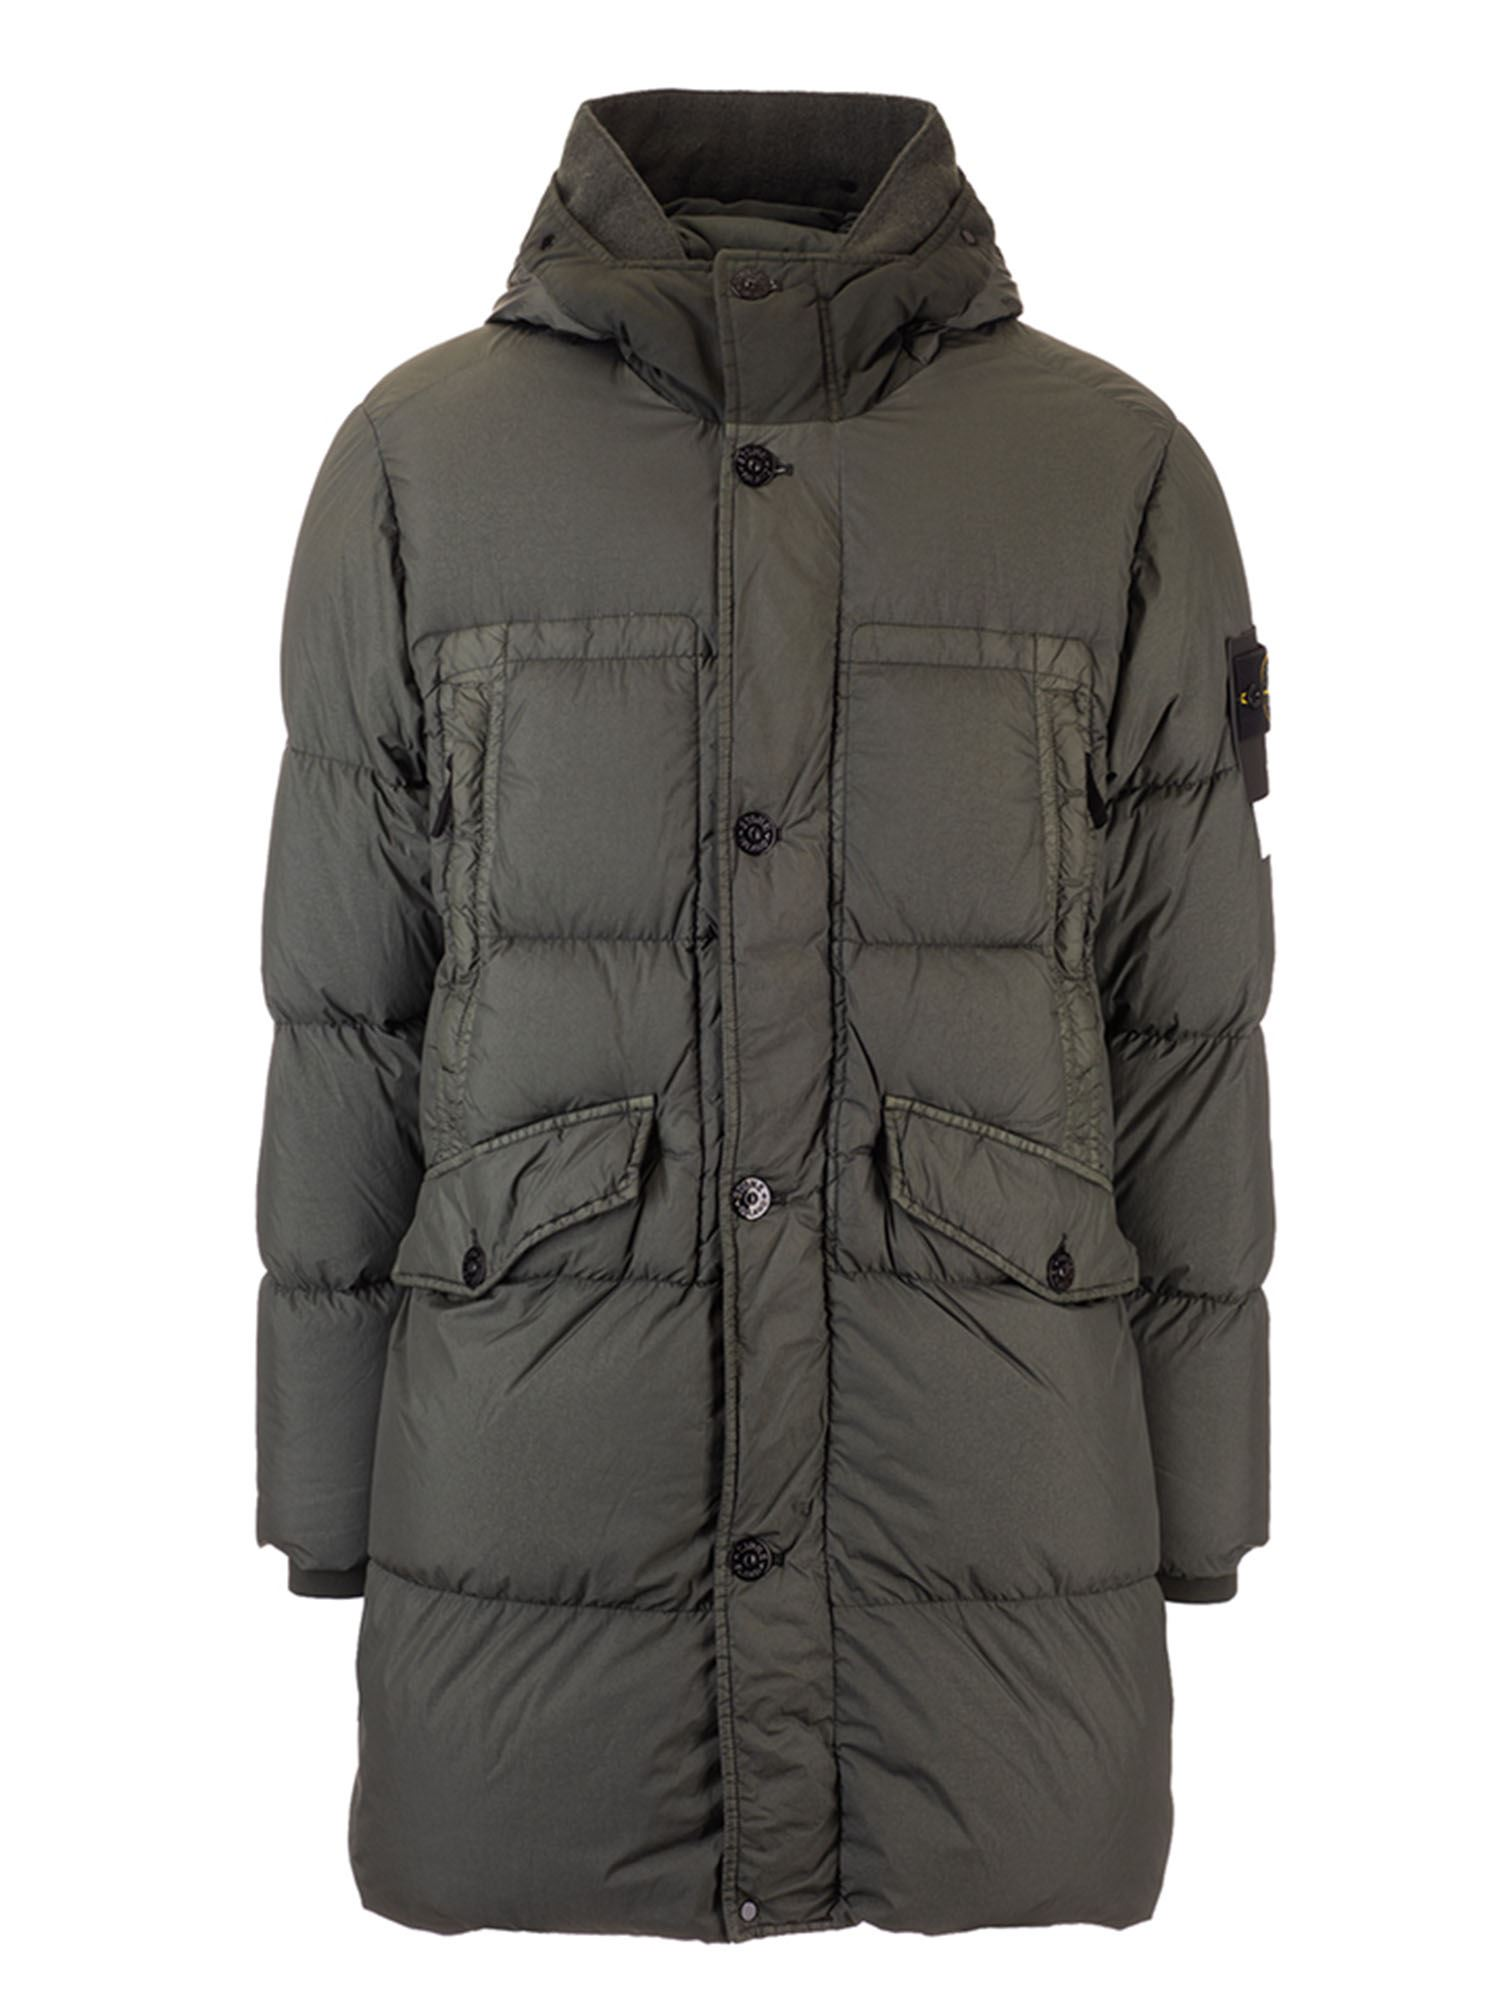 Stone Island CRINKLE REPS DOWN JACKET IN MOSS COLOR